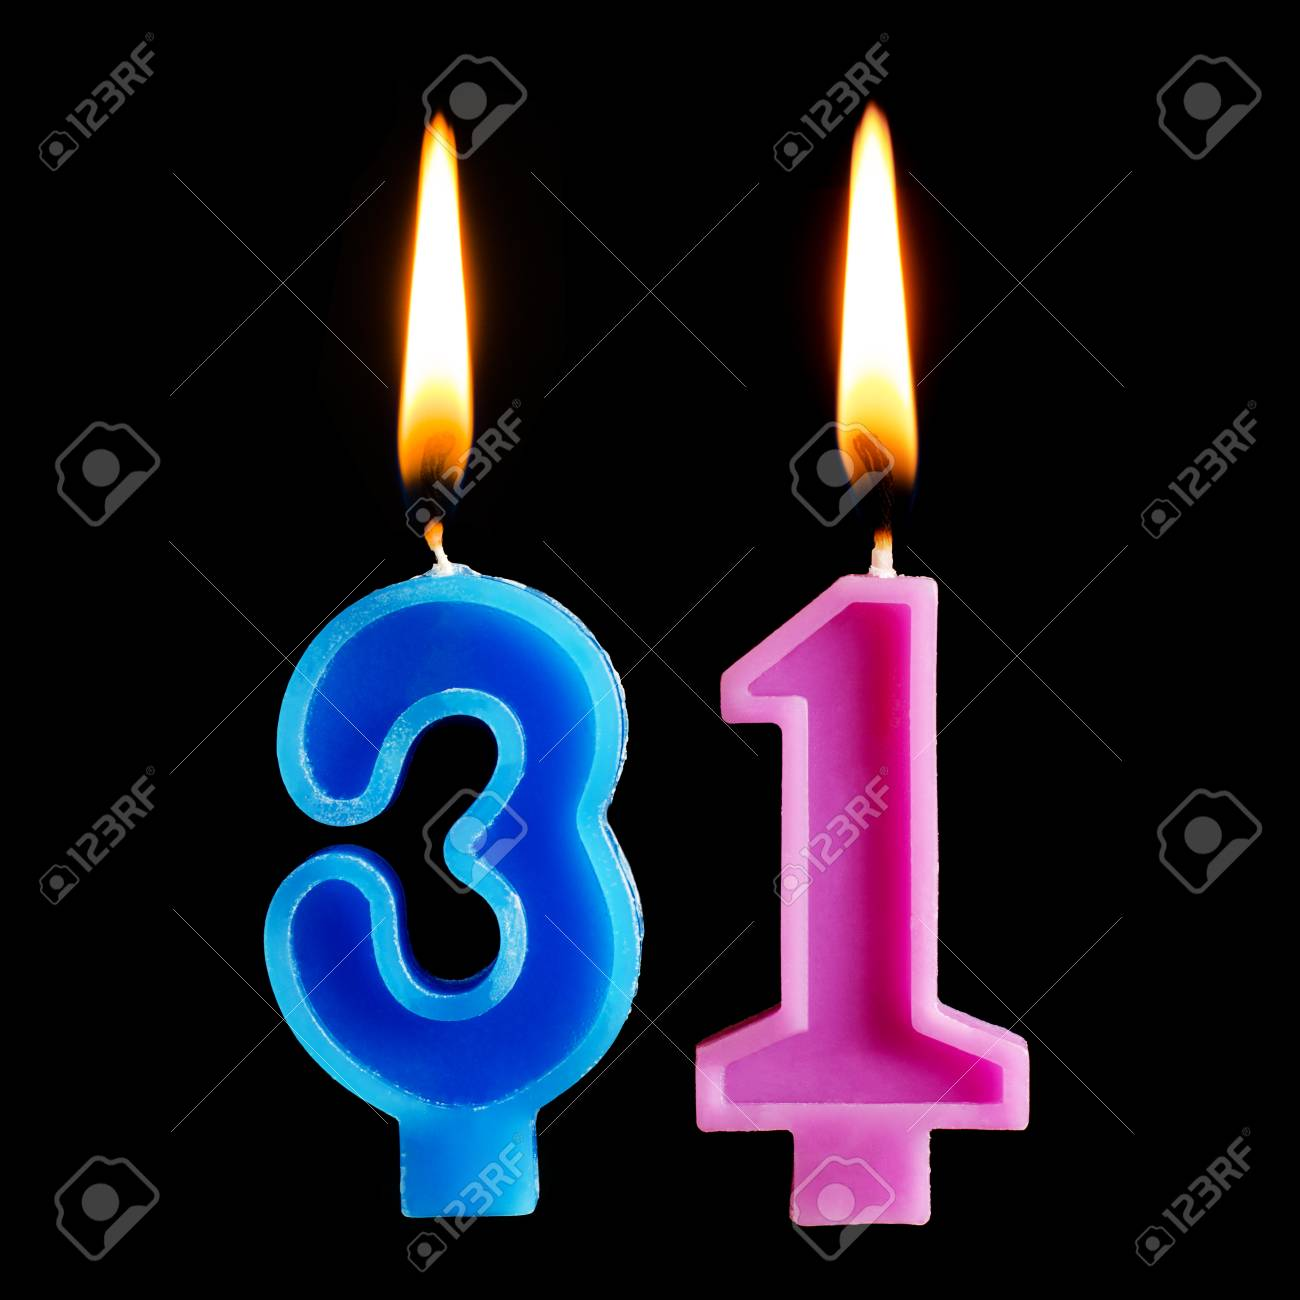 Burning Birthday Candles In The Form Of 31 Thirty One For Cake Isolated On Black Background